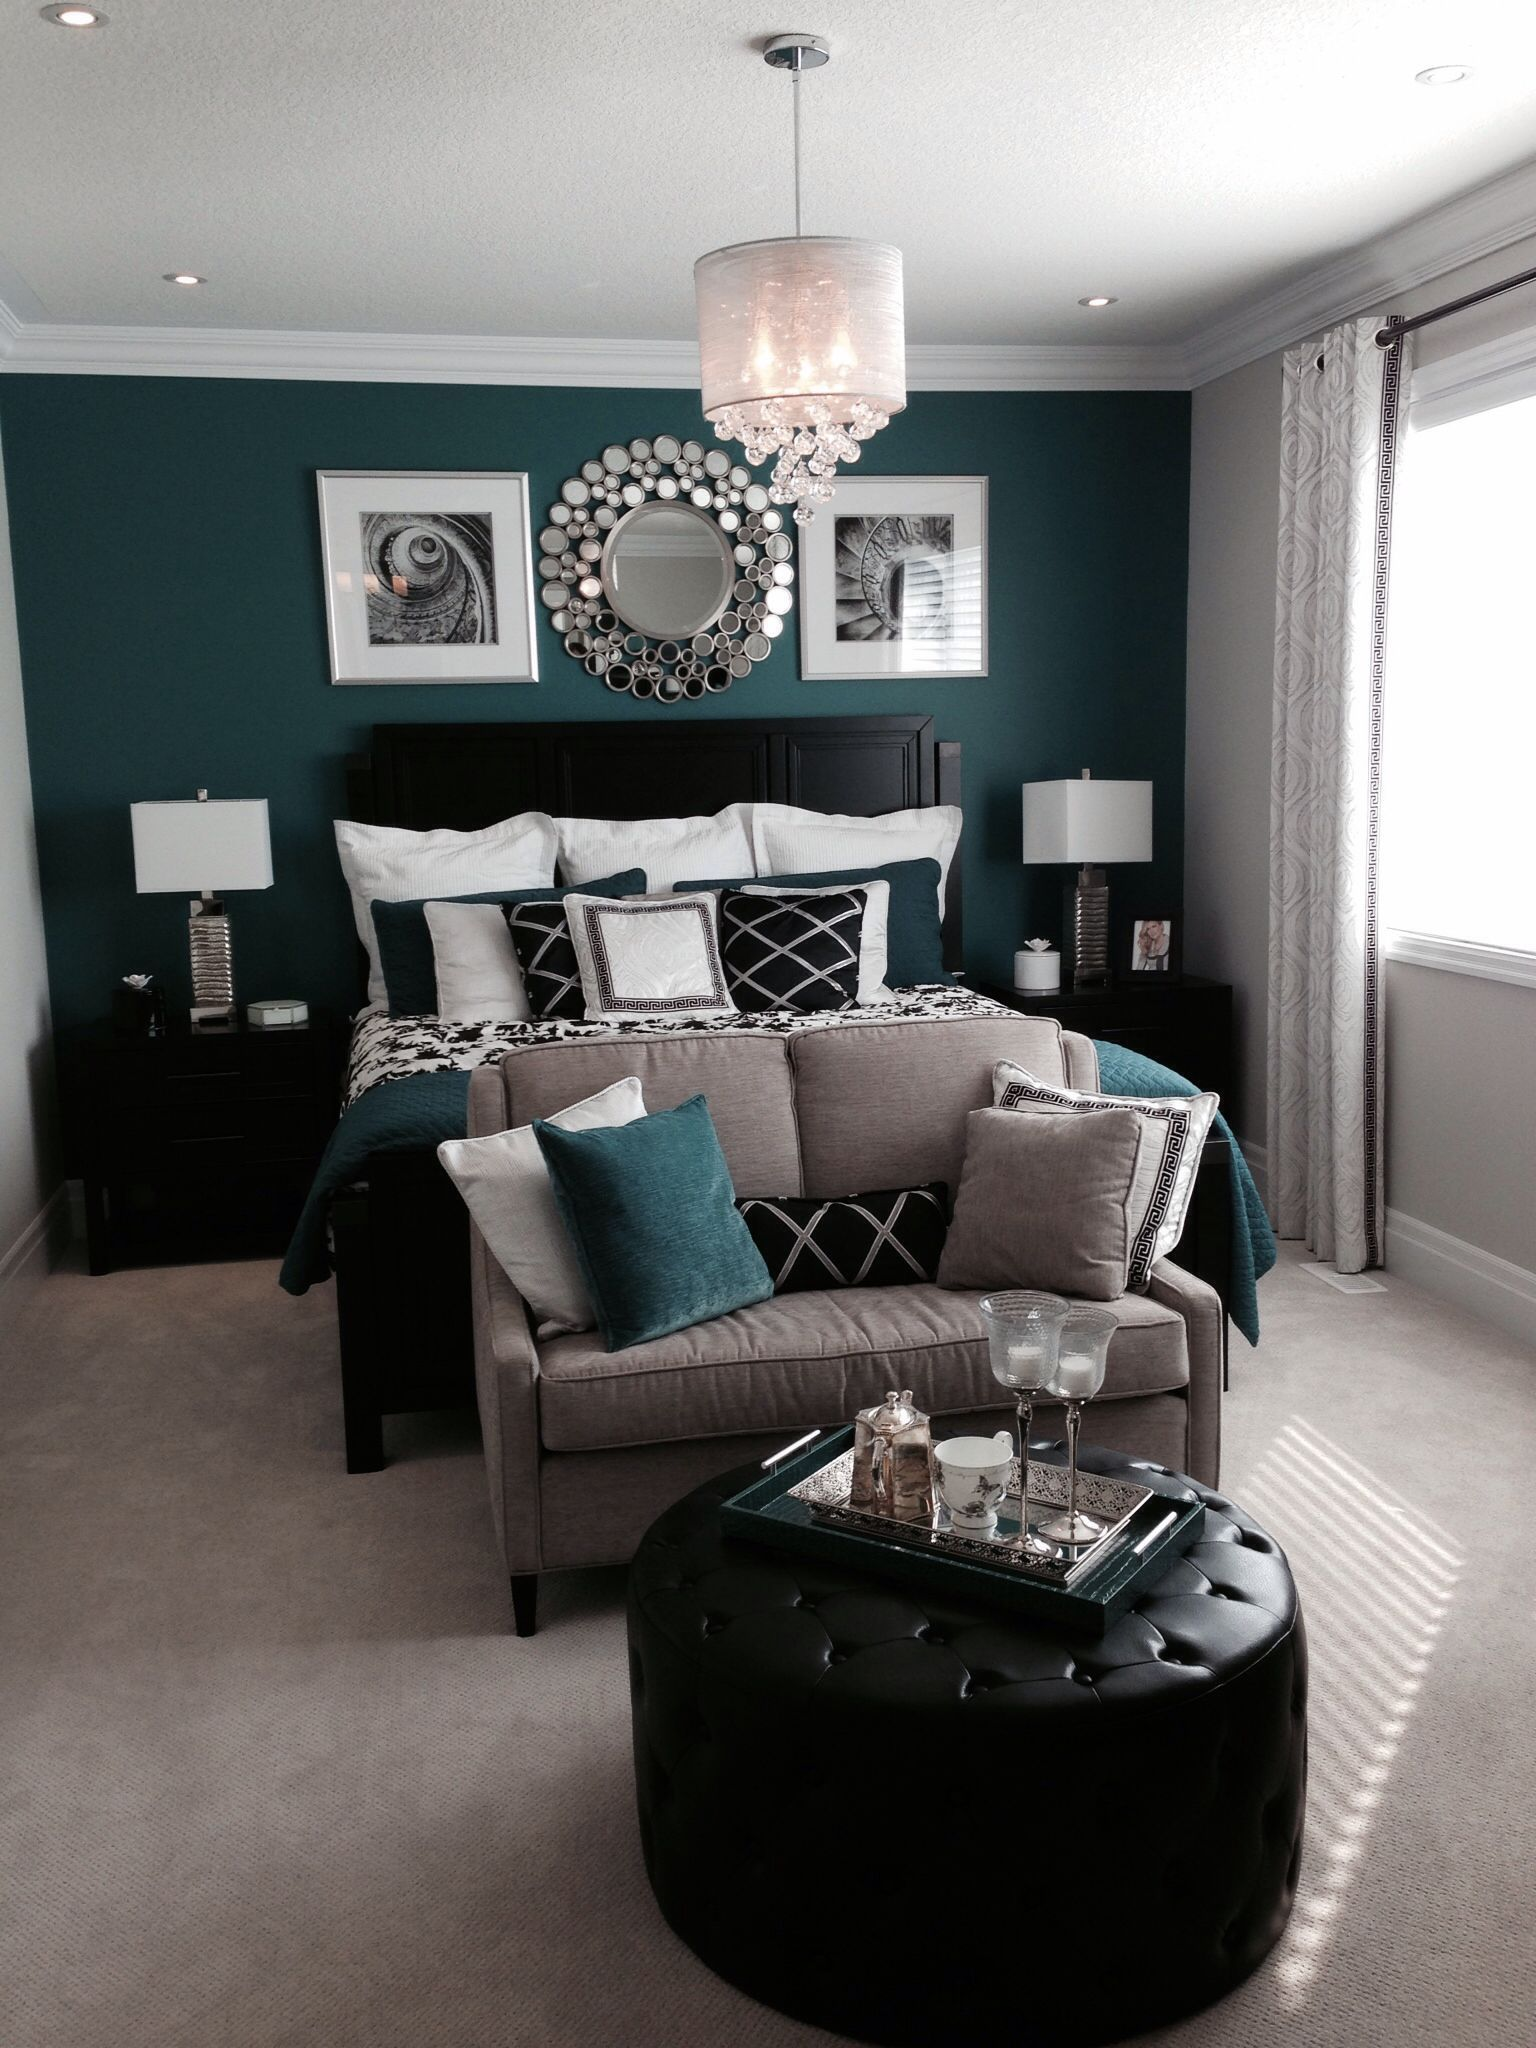 Dark Teal Living Room Decor Internal Home Design In 2020 Remodel Bedroom Master Bedrooms Decor Bedroom Makeover